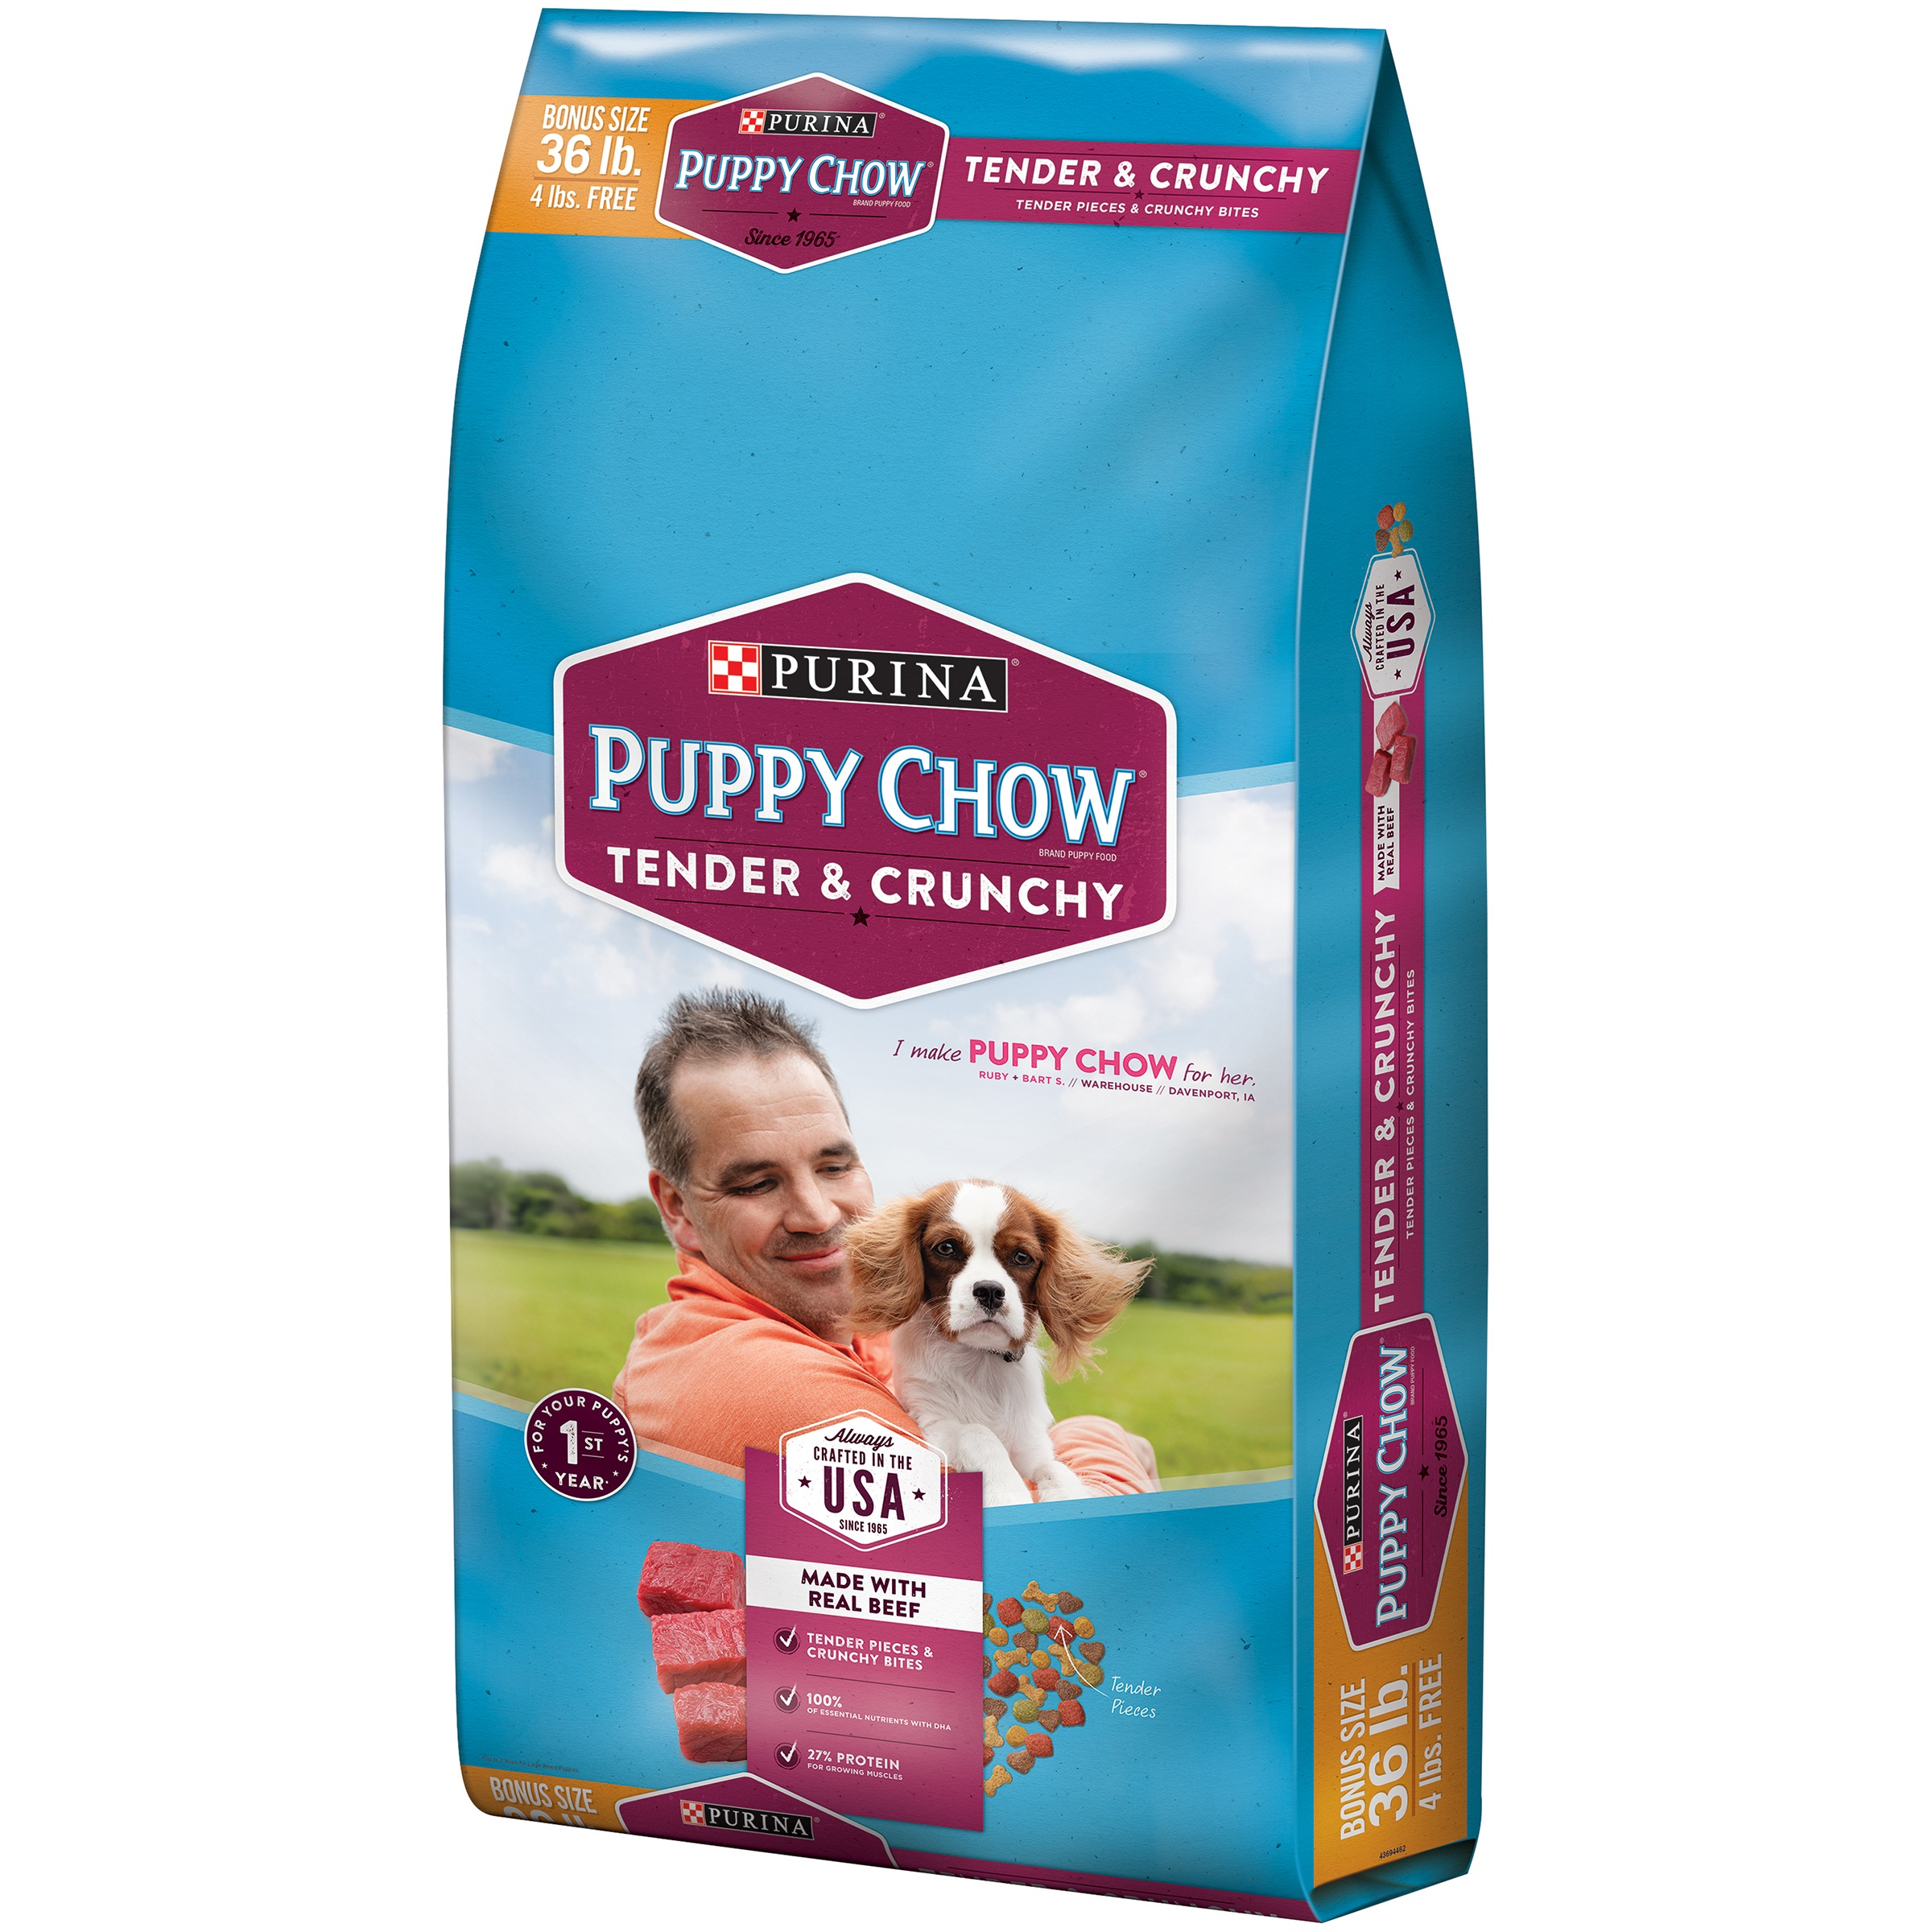 Purina Puppy Chow Tender & Crunchy Dry Puppy Food - 36 lb. Bag ...